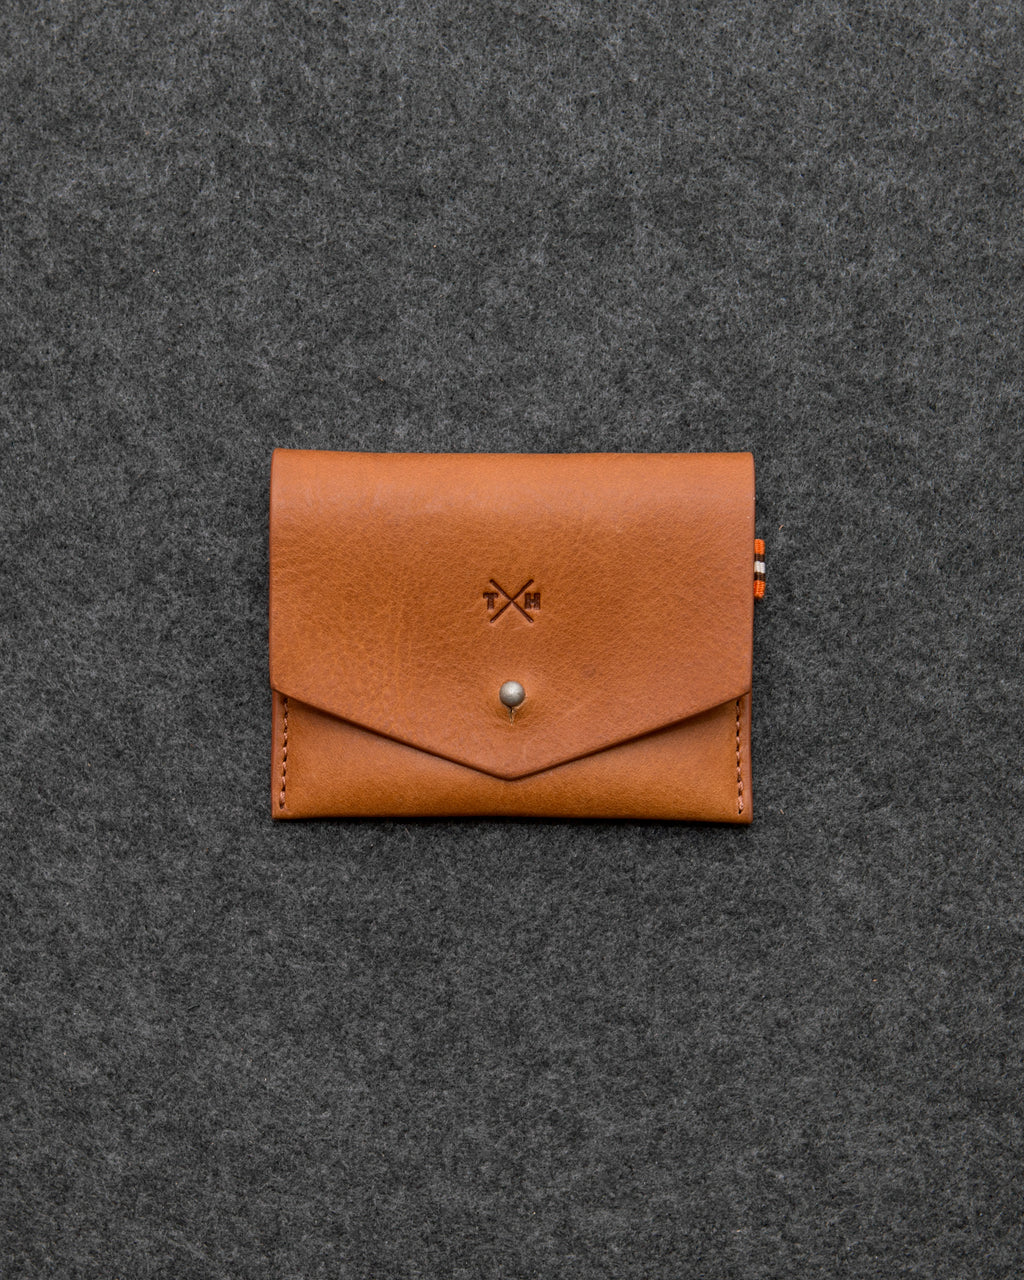 Chukka Leather Slim Purse